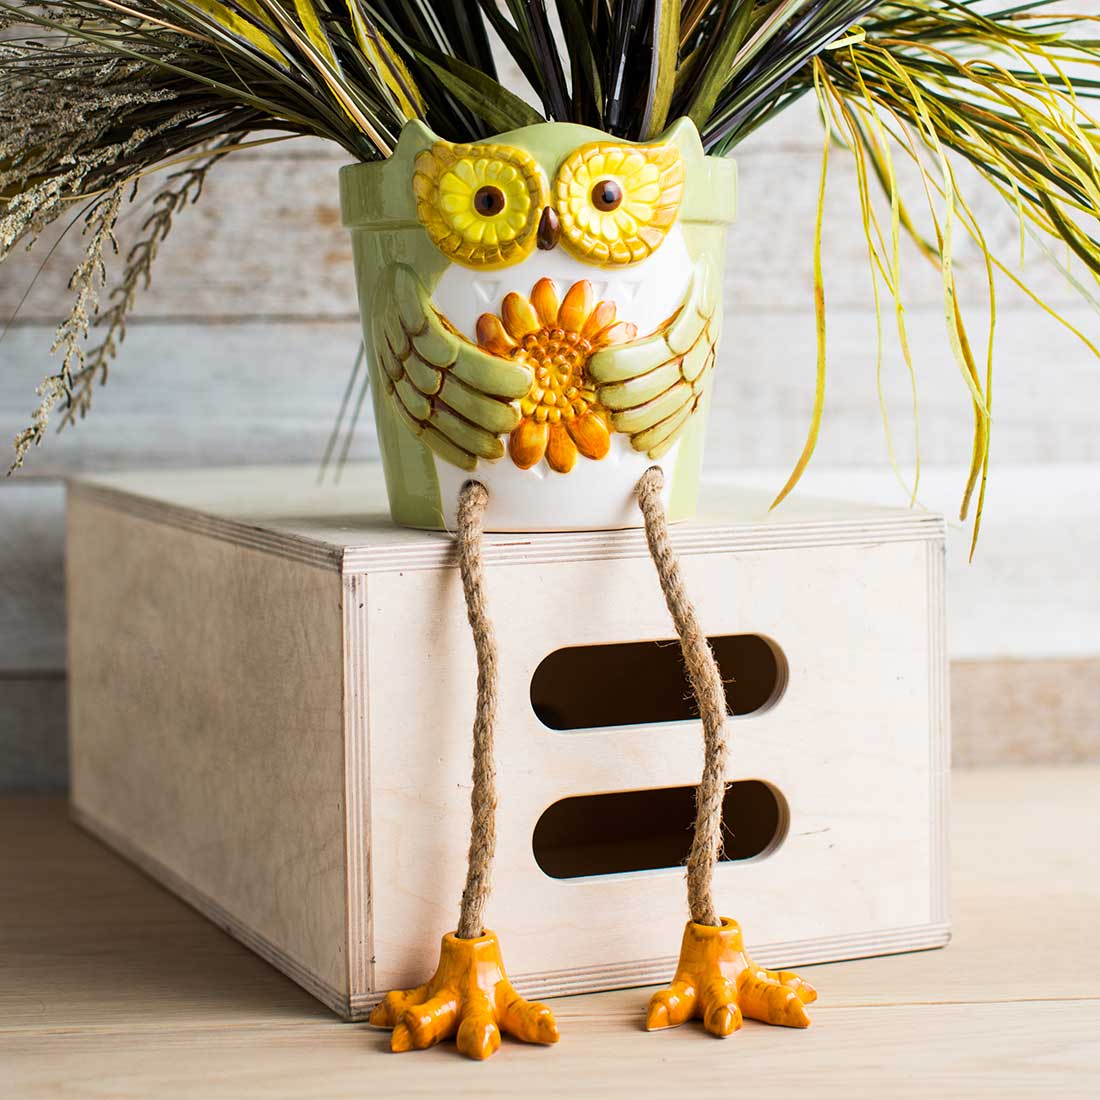 Ceramic Owl Planter Sitter